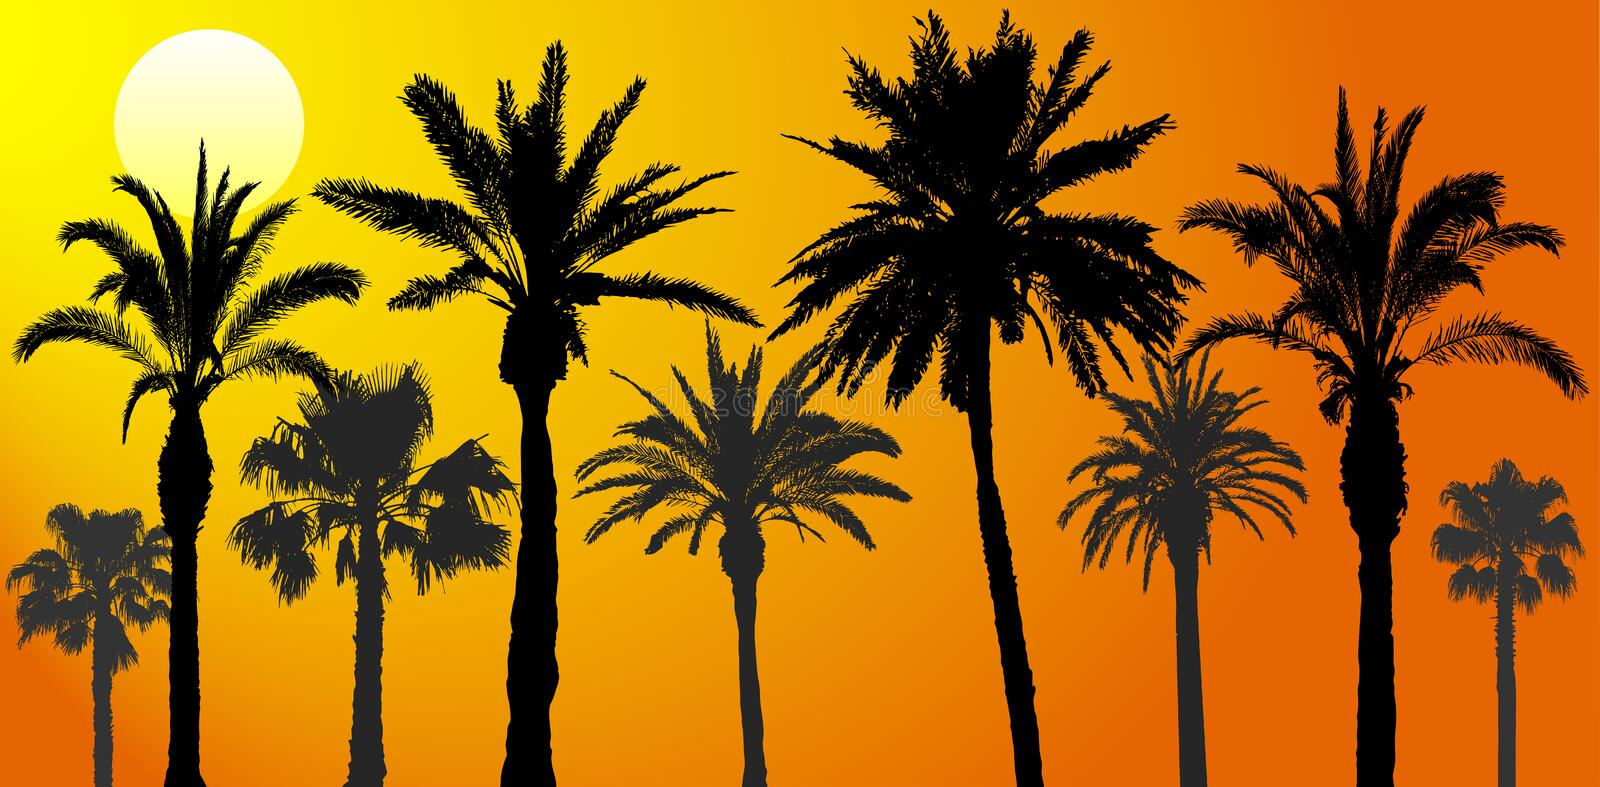 Silhouettes of palm trees at sunrise, vector illustration.  vector illustration